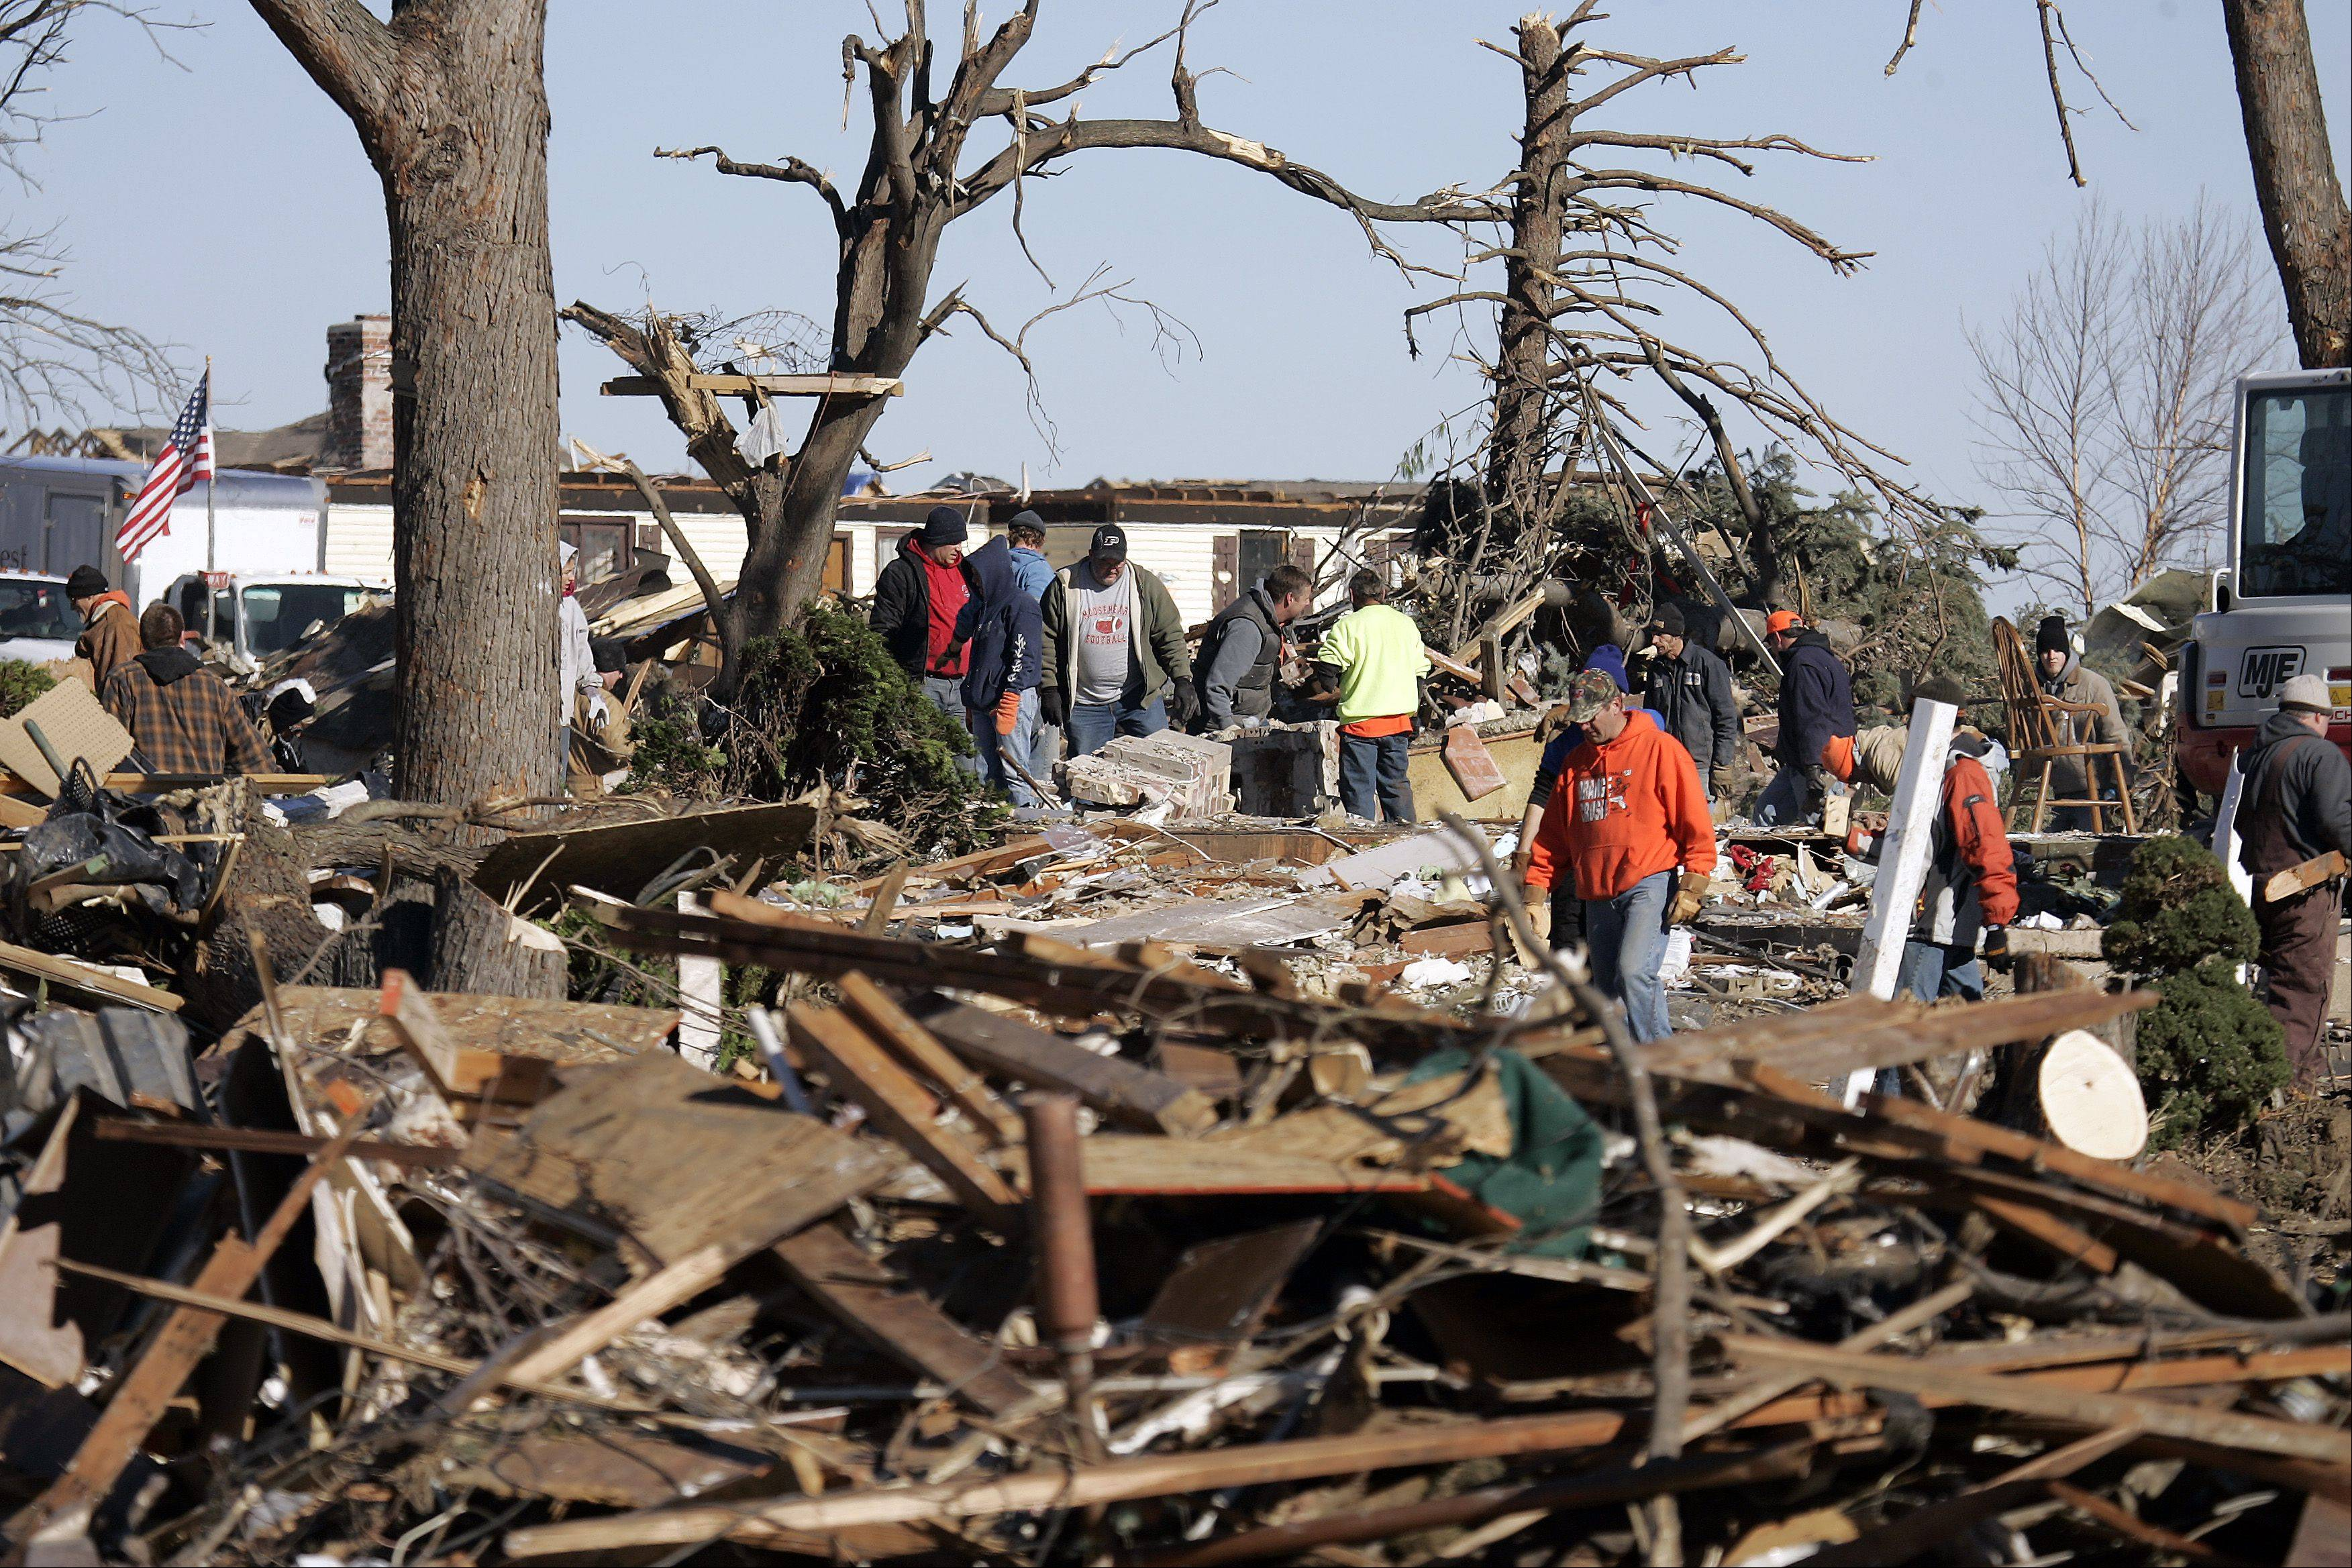 Many suburban residents have made the trip to Washington, Ill., over the last week to help clean up after a powerful tornado devastated parts of the community Nov. 16.